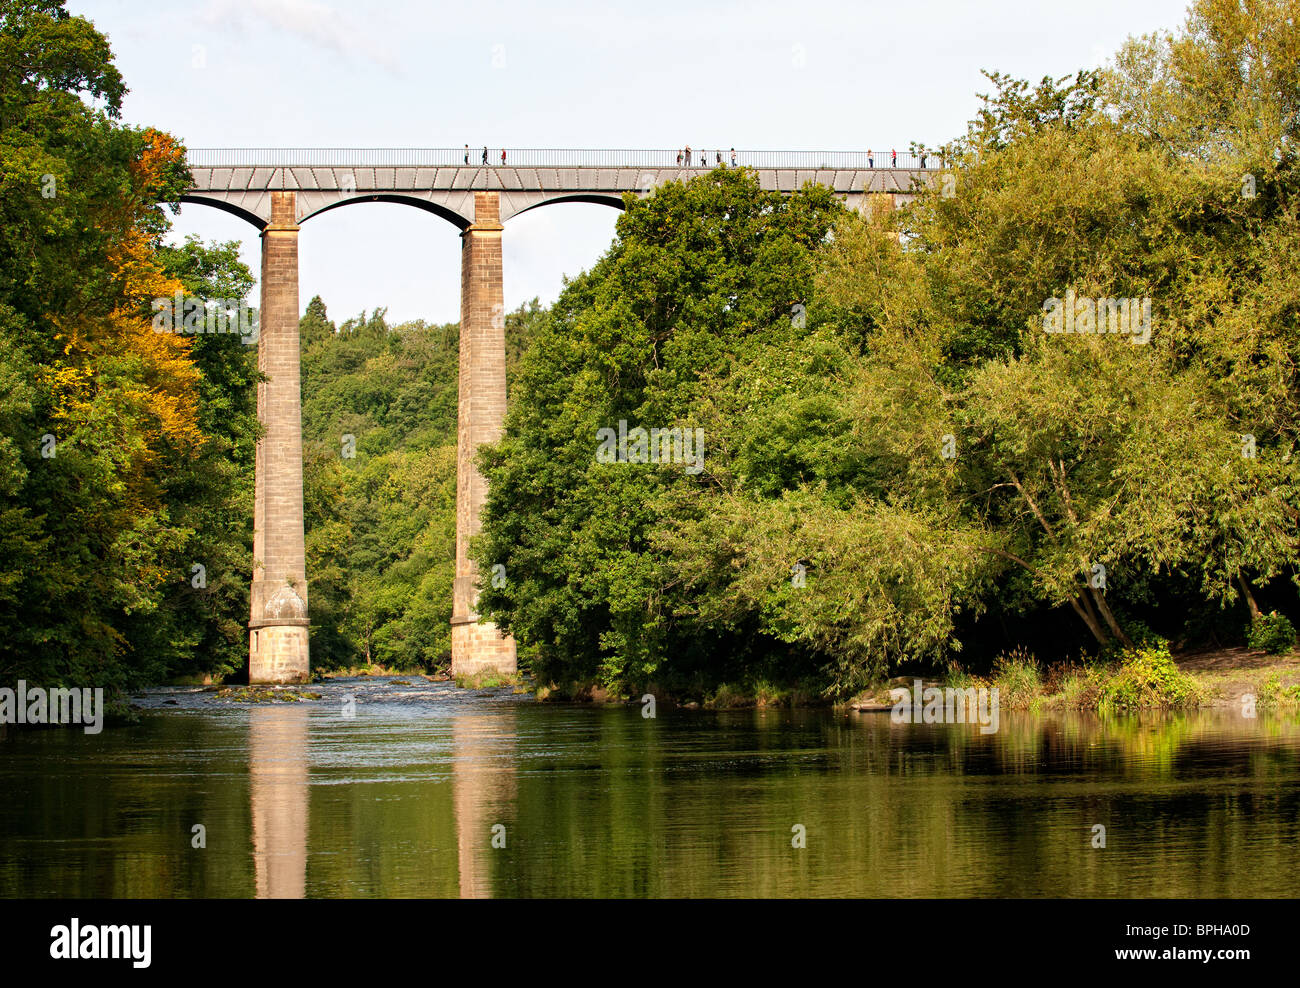 Pontcysyllte Aqueduct carries the Llangollen Canal over the River Dee in Denbighshire, North Wales Stock Photo